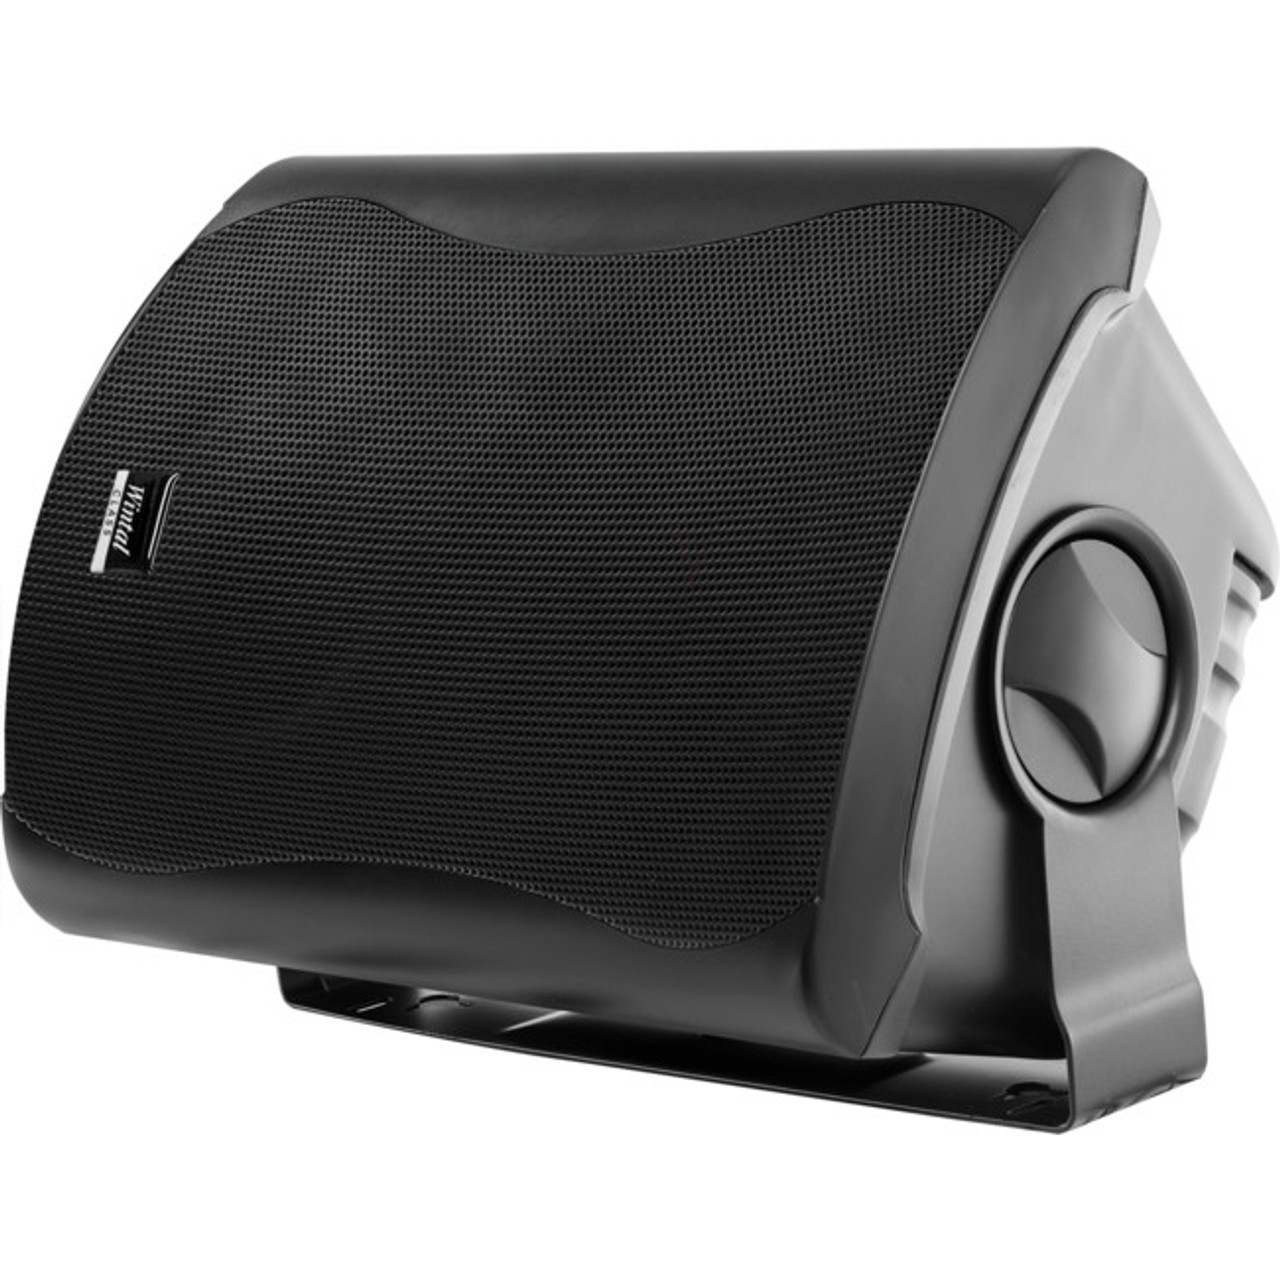 Wintal CLASS5AB 5-inch Active Box Speakers - Black